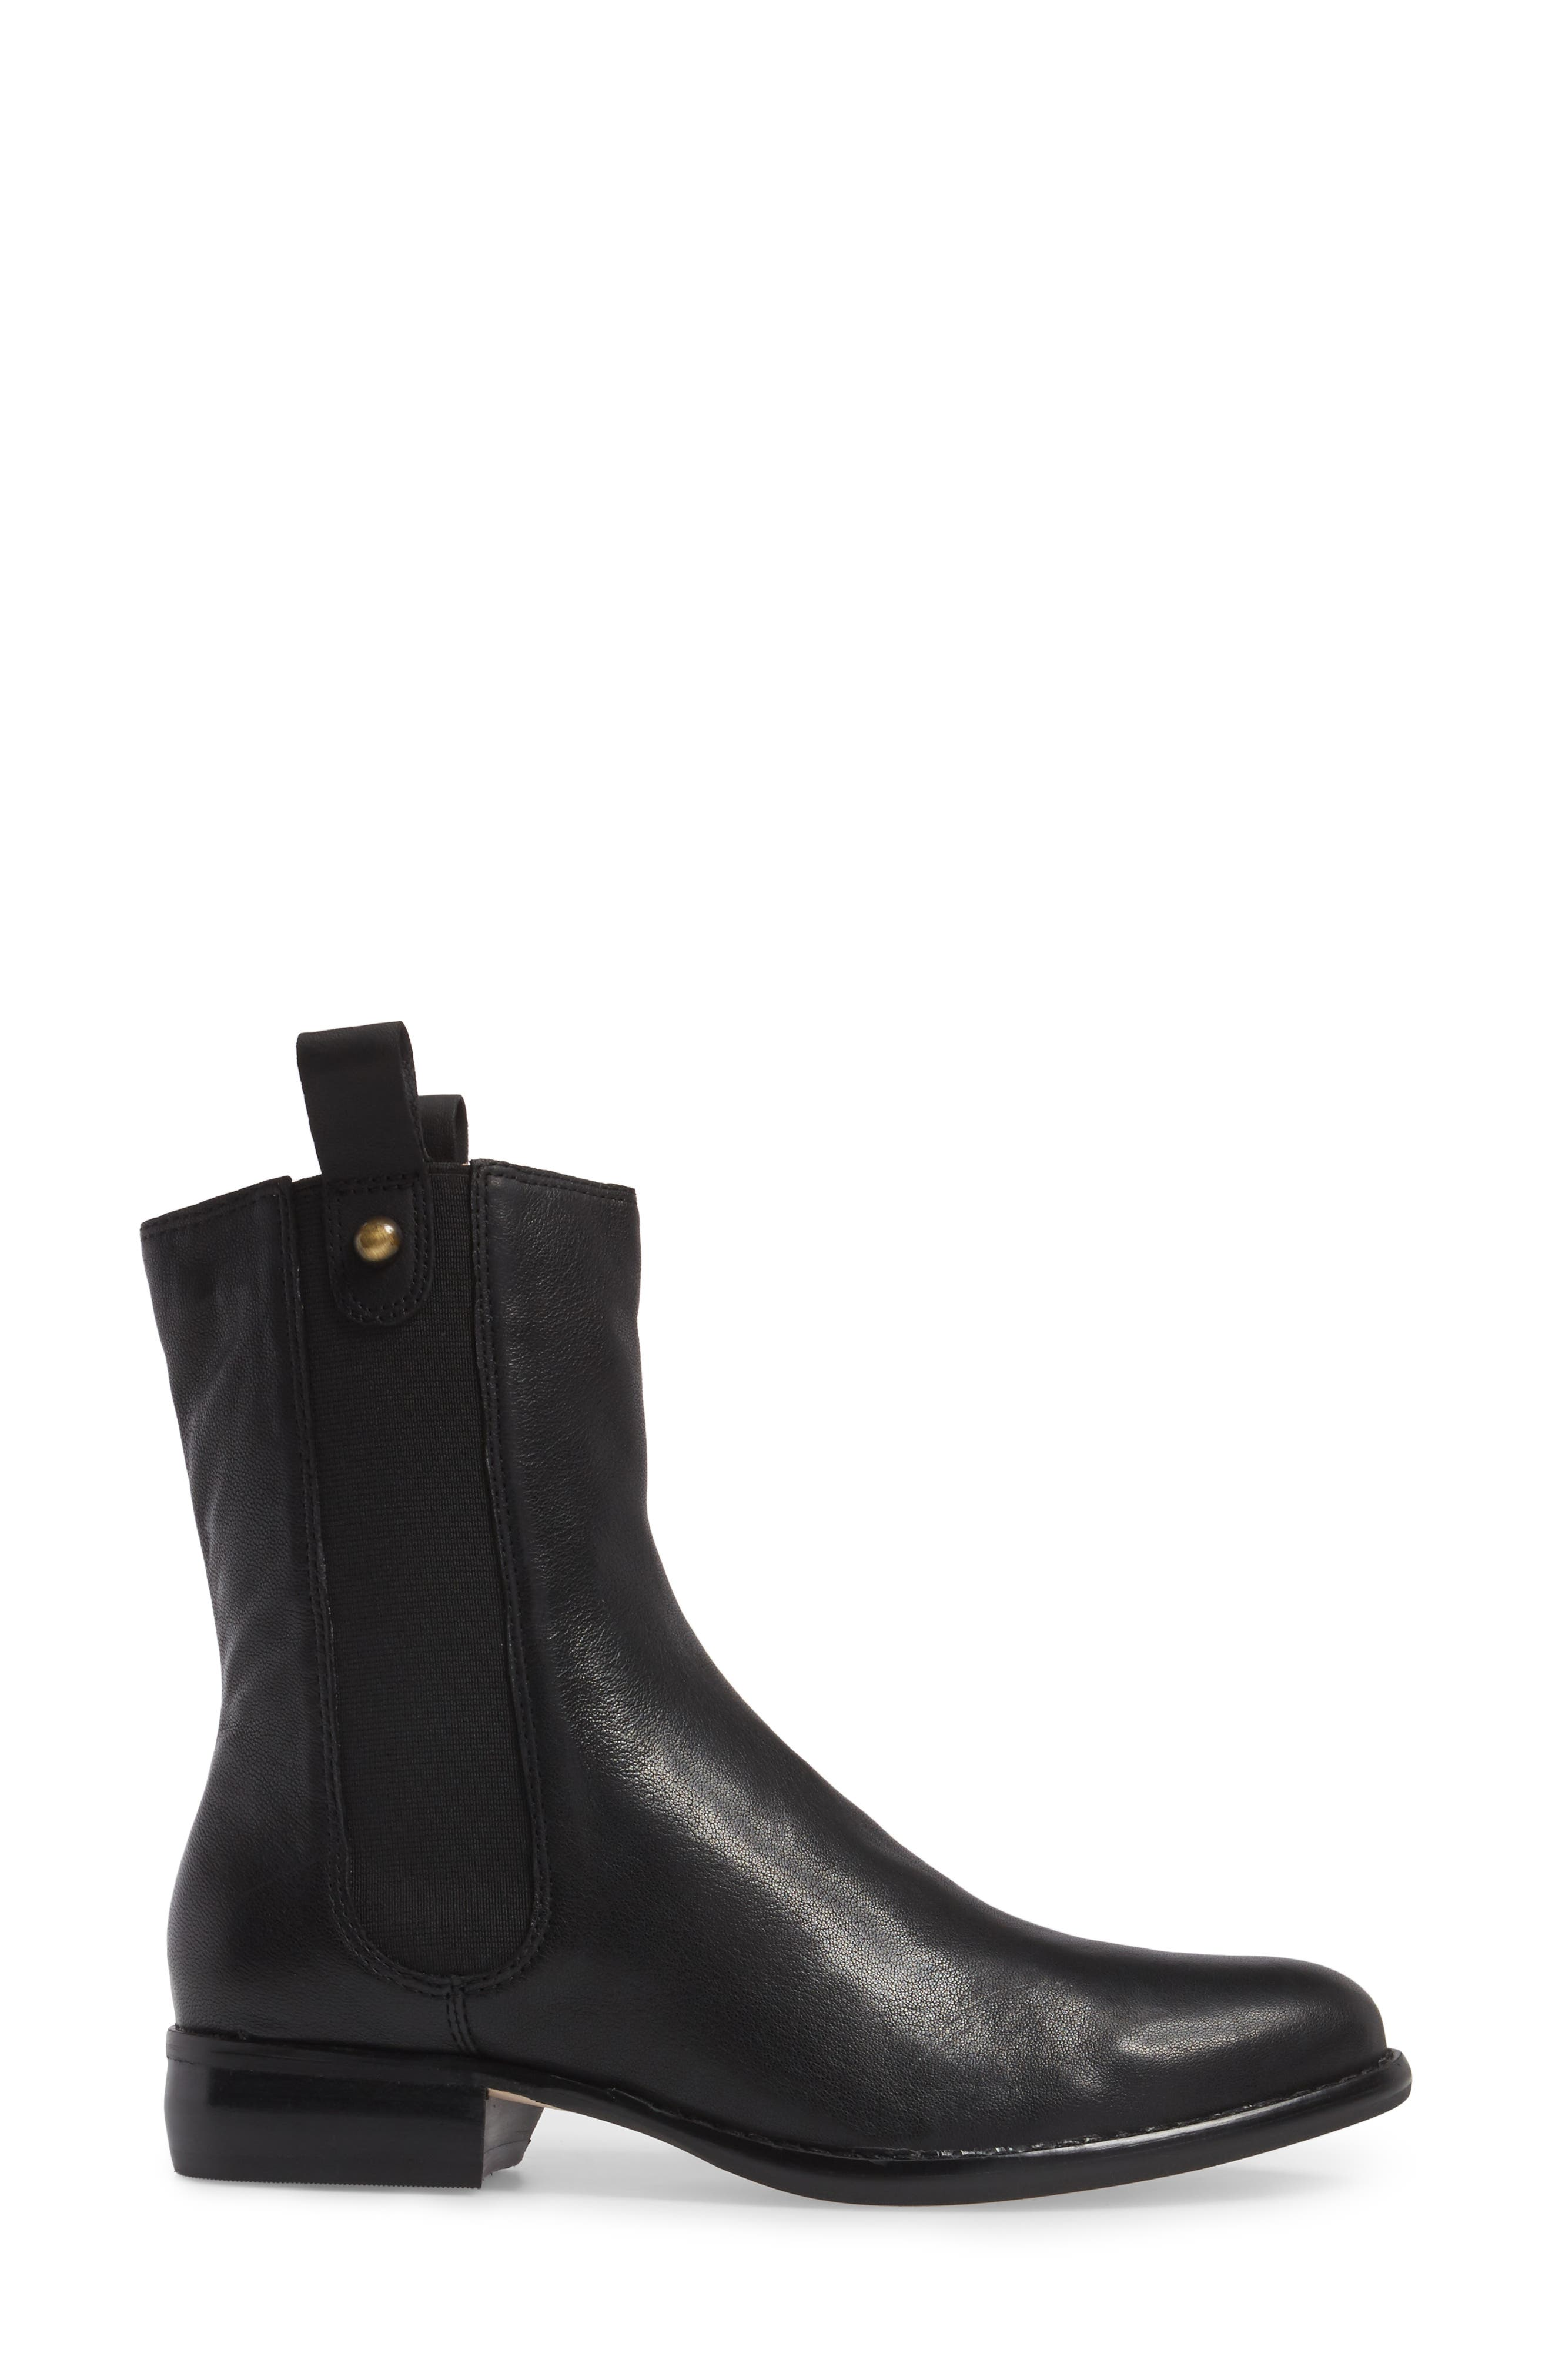 CC Corso Como Armando Boot,                             Alternate thumbnail 3, color,                             001